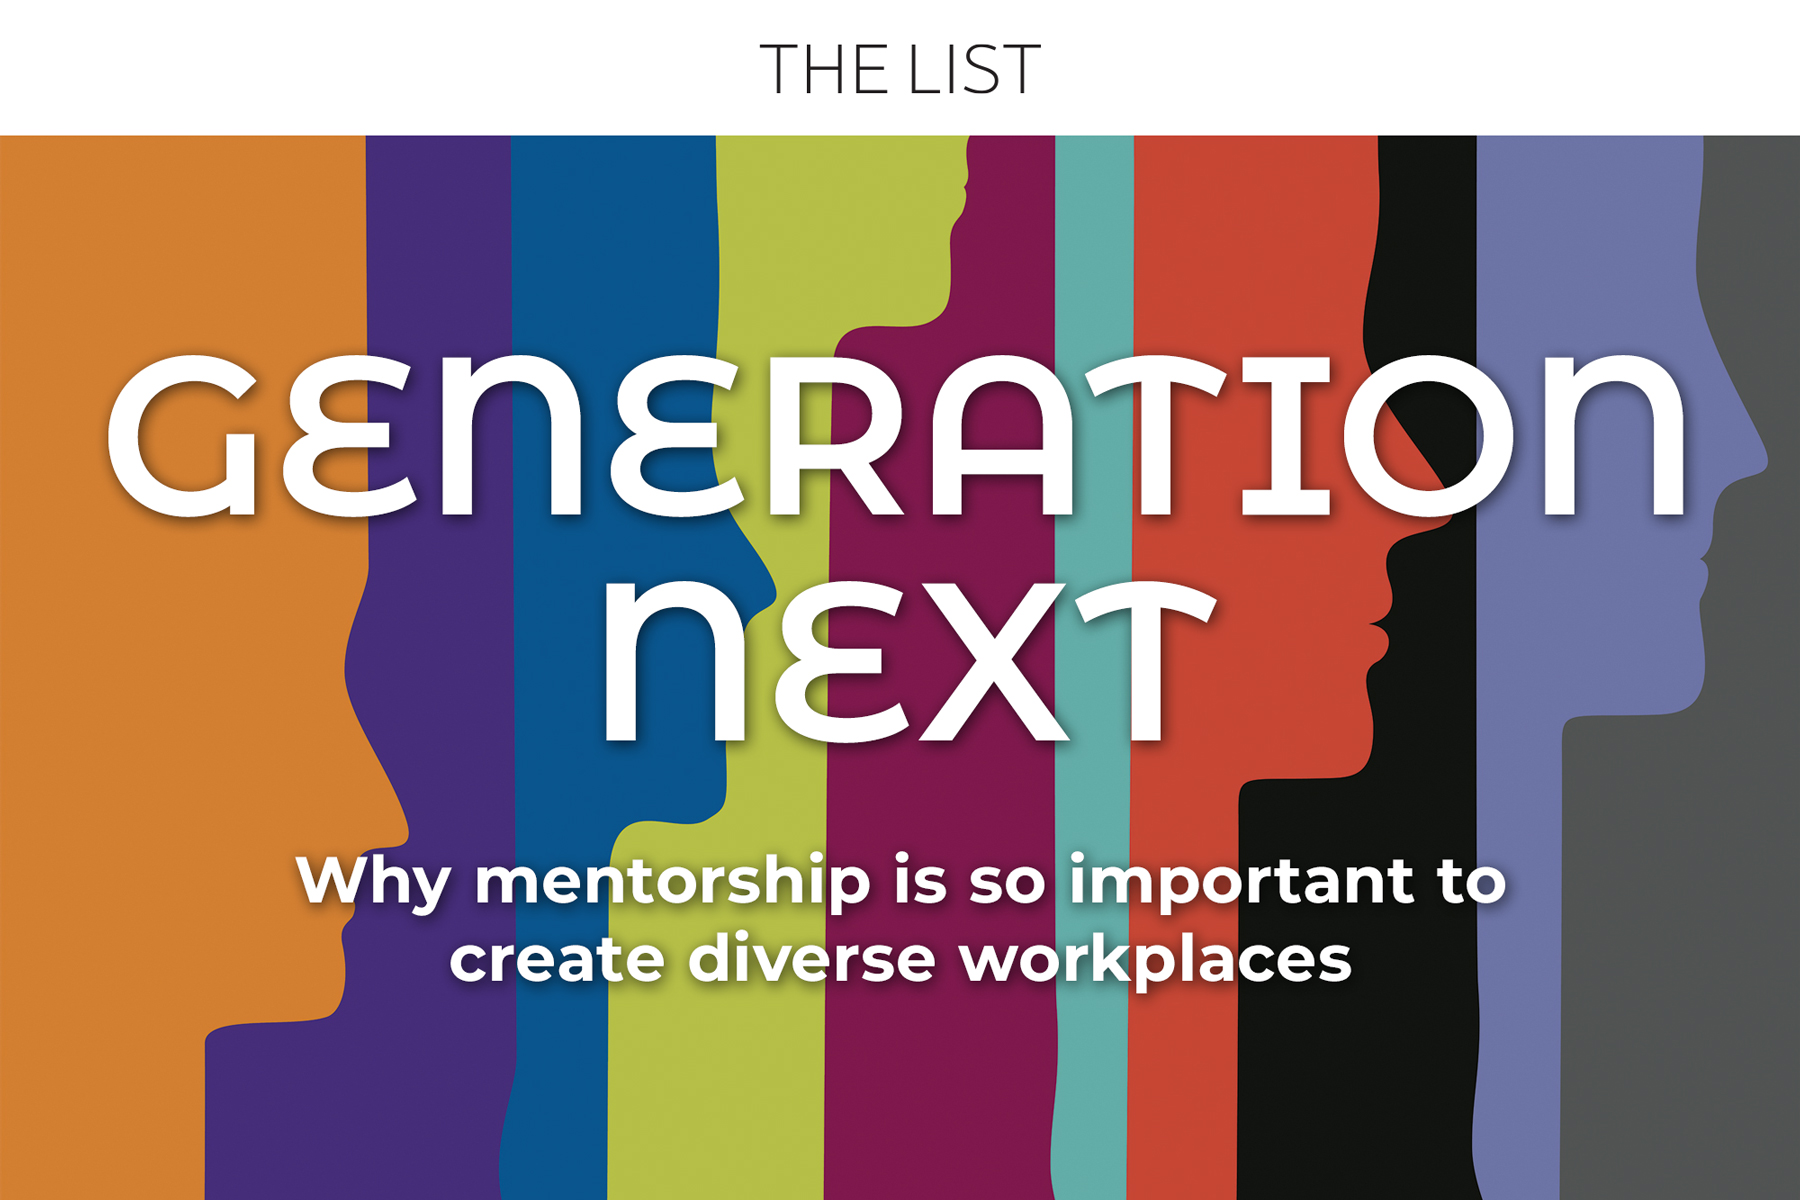 Watch live at 3:30 p.m. EDT: Why mentorship is so important to create diverse workplaces